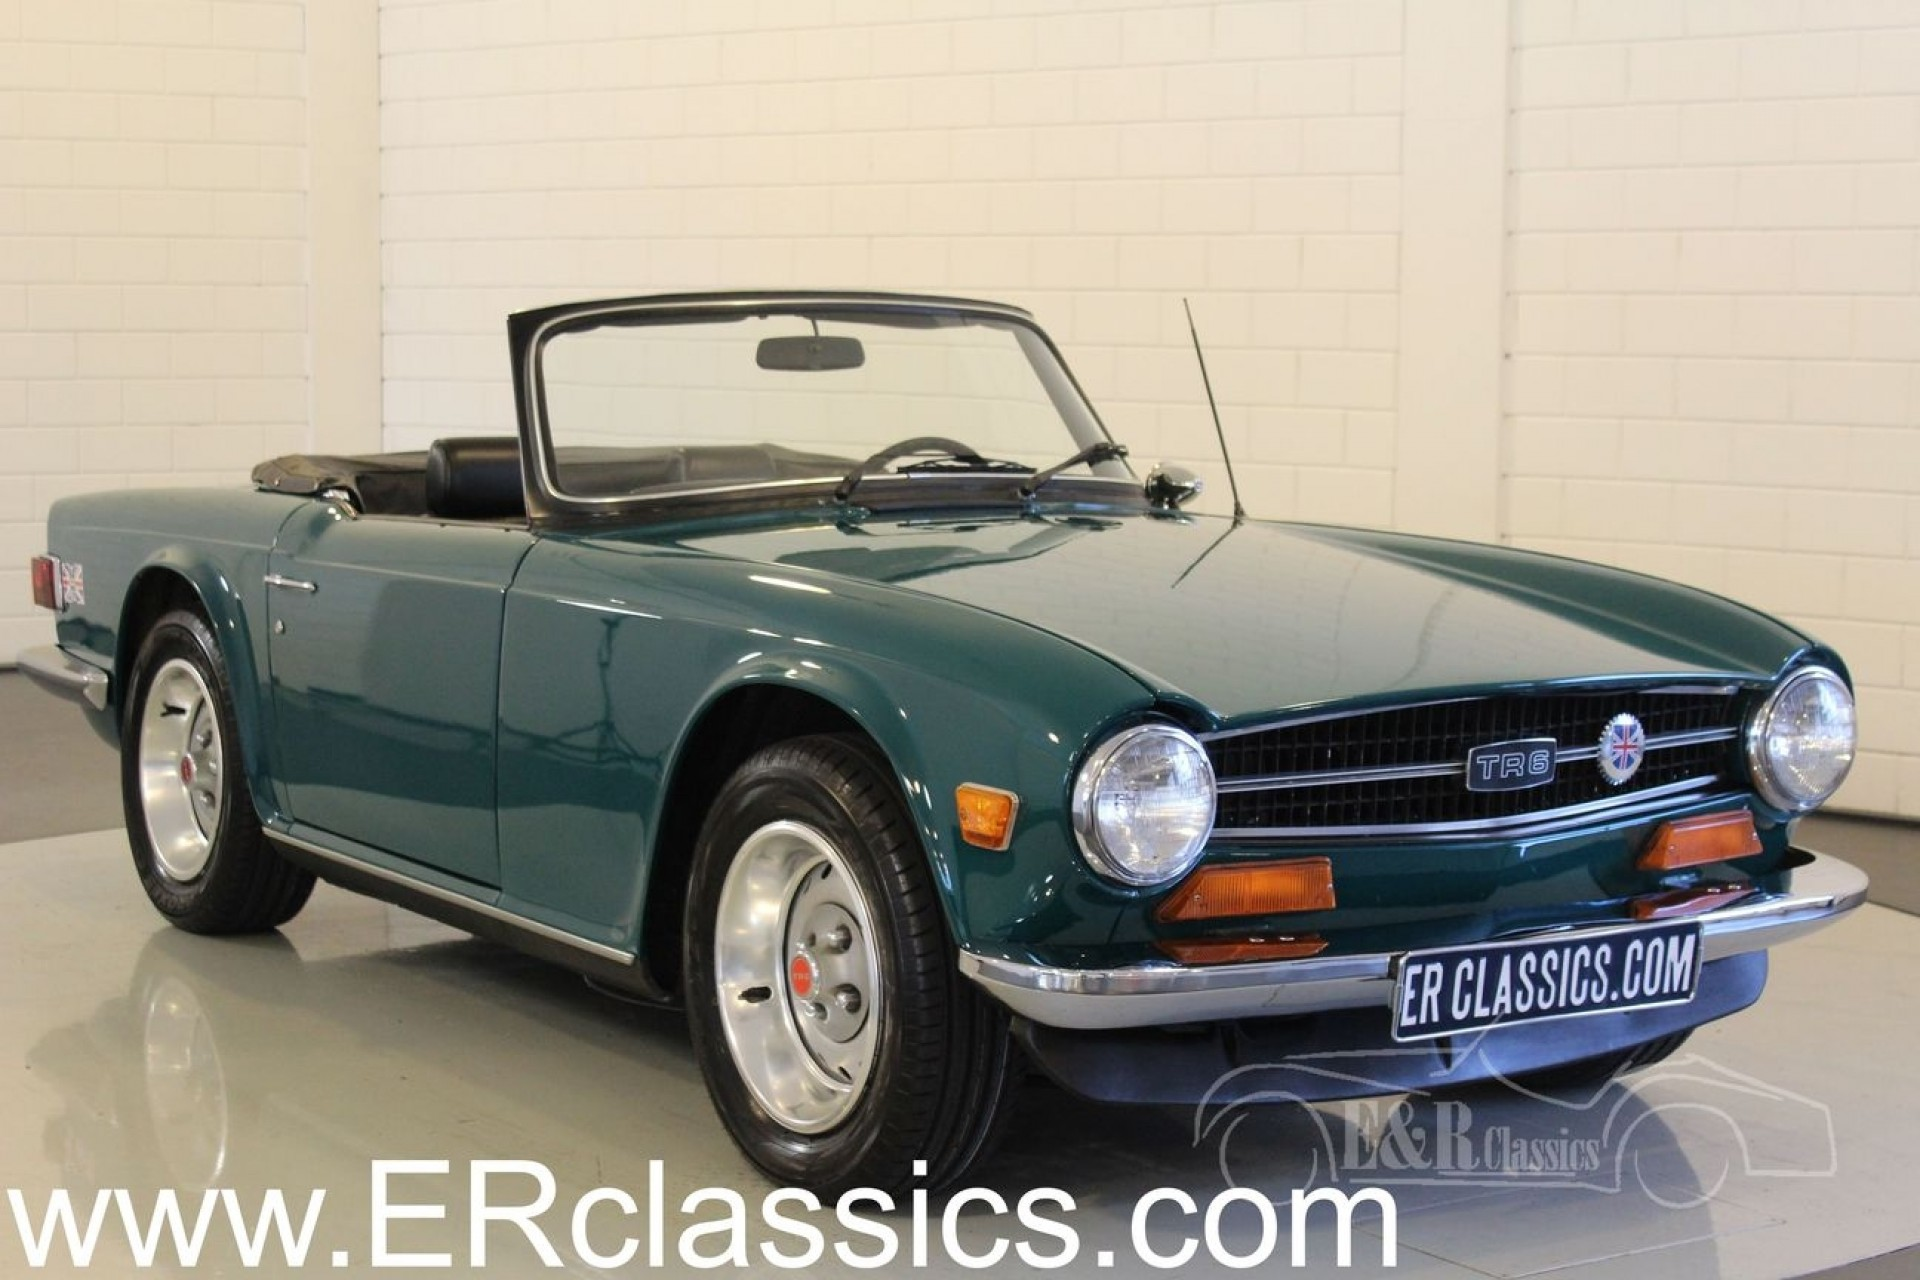 Honda Union City >> Triumph TR6 cabriolet 1974 for sale at ERclassics